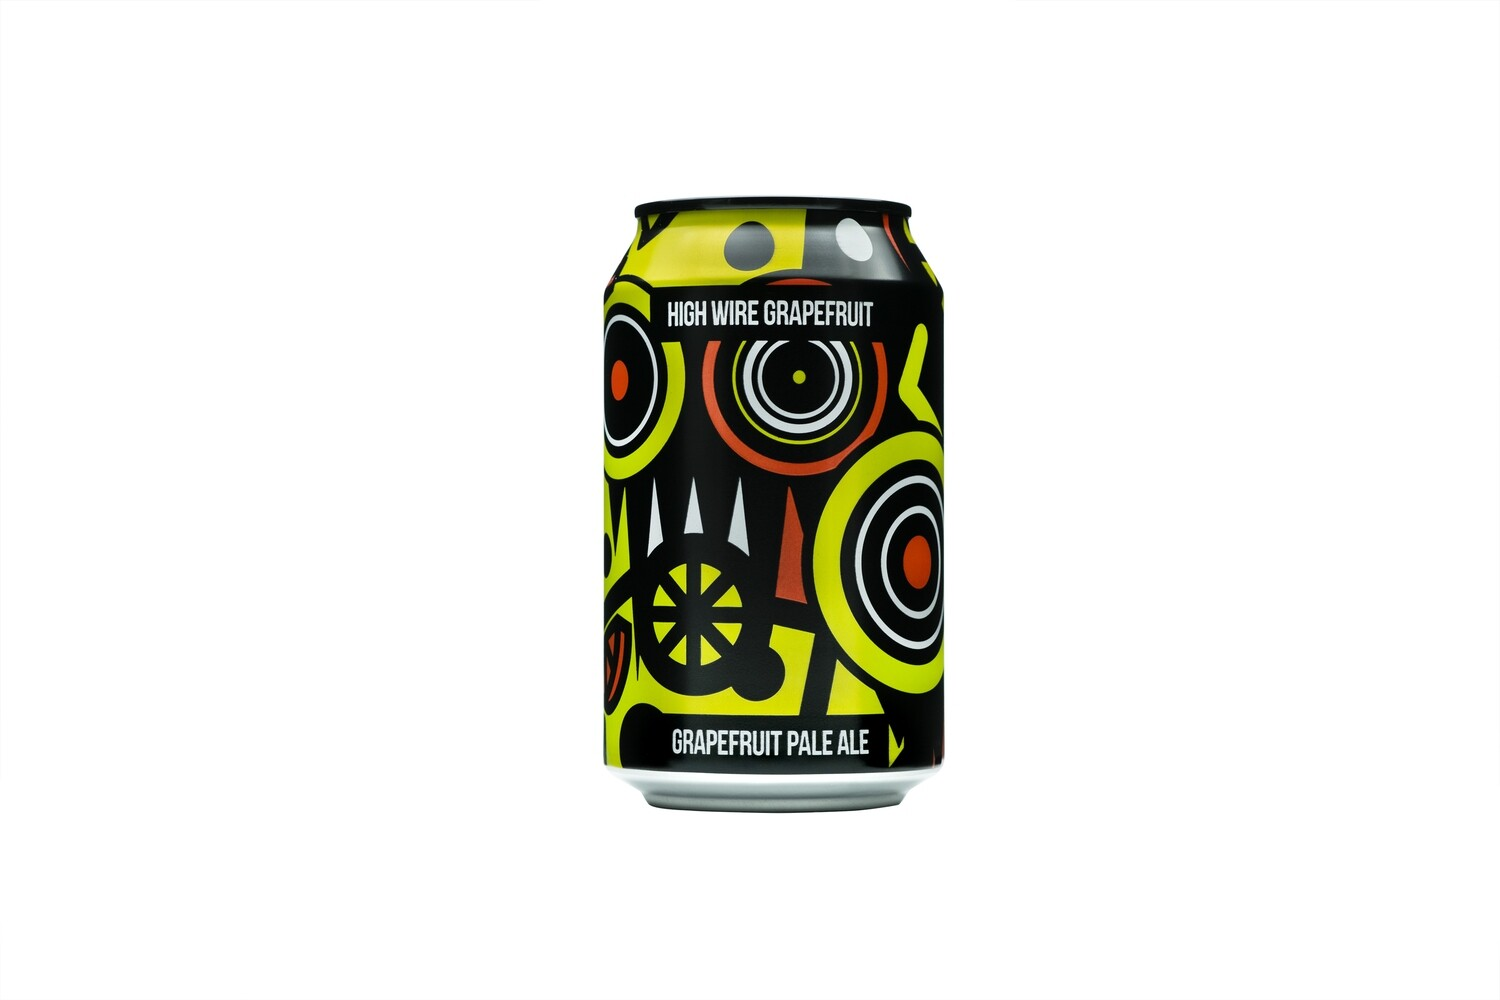 High Wire Grapefruit 6 Pack